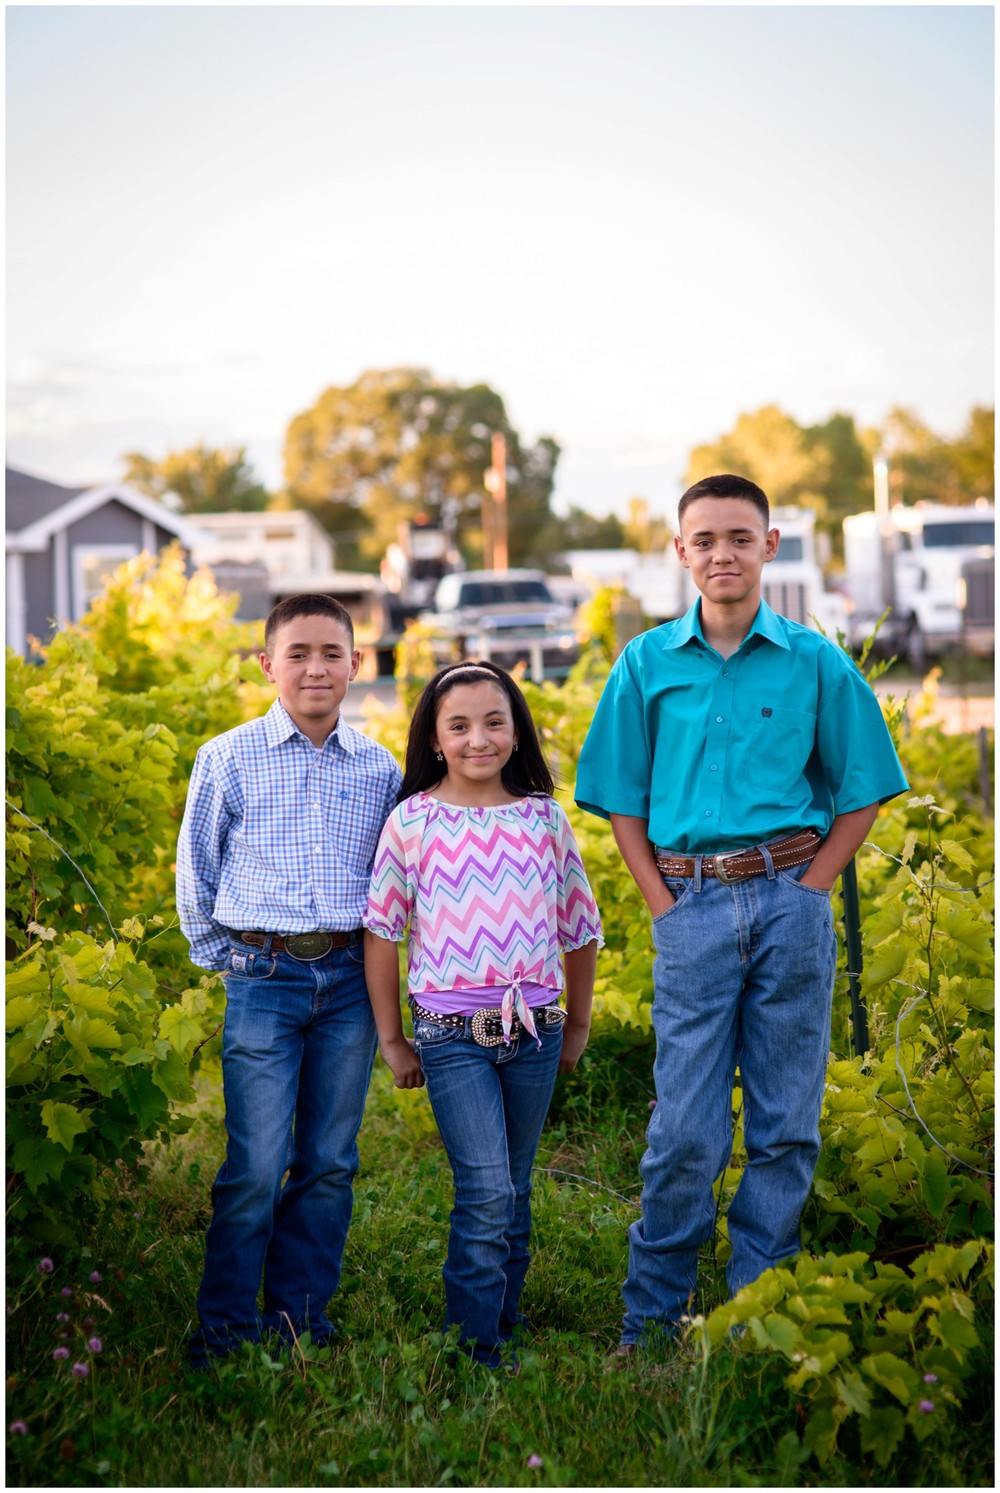 Colorado-lifestyle-farm-family-photography_0036.jpg